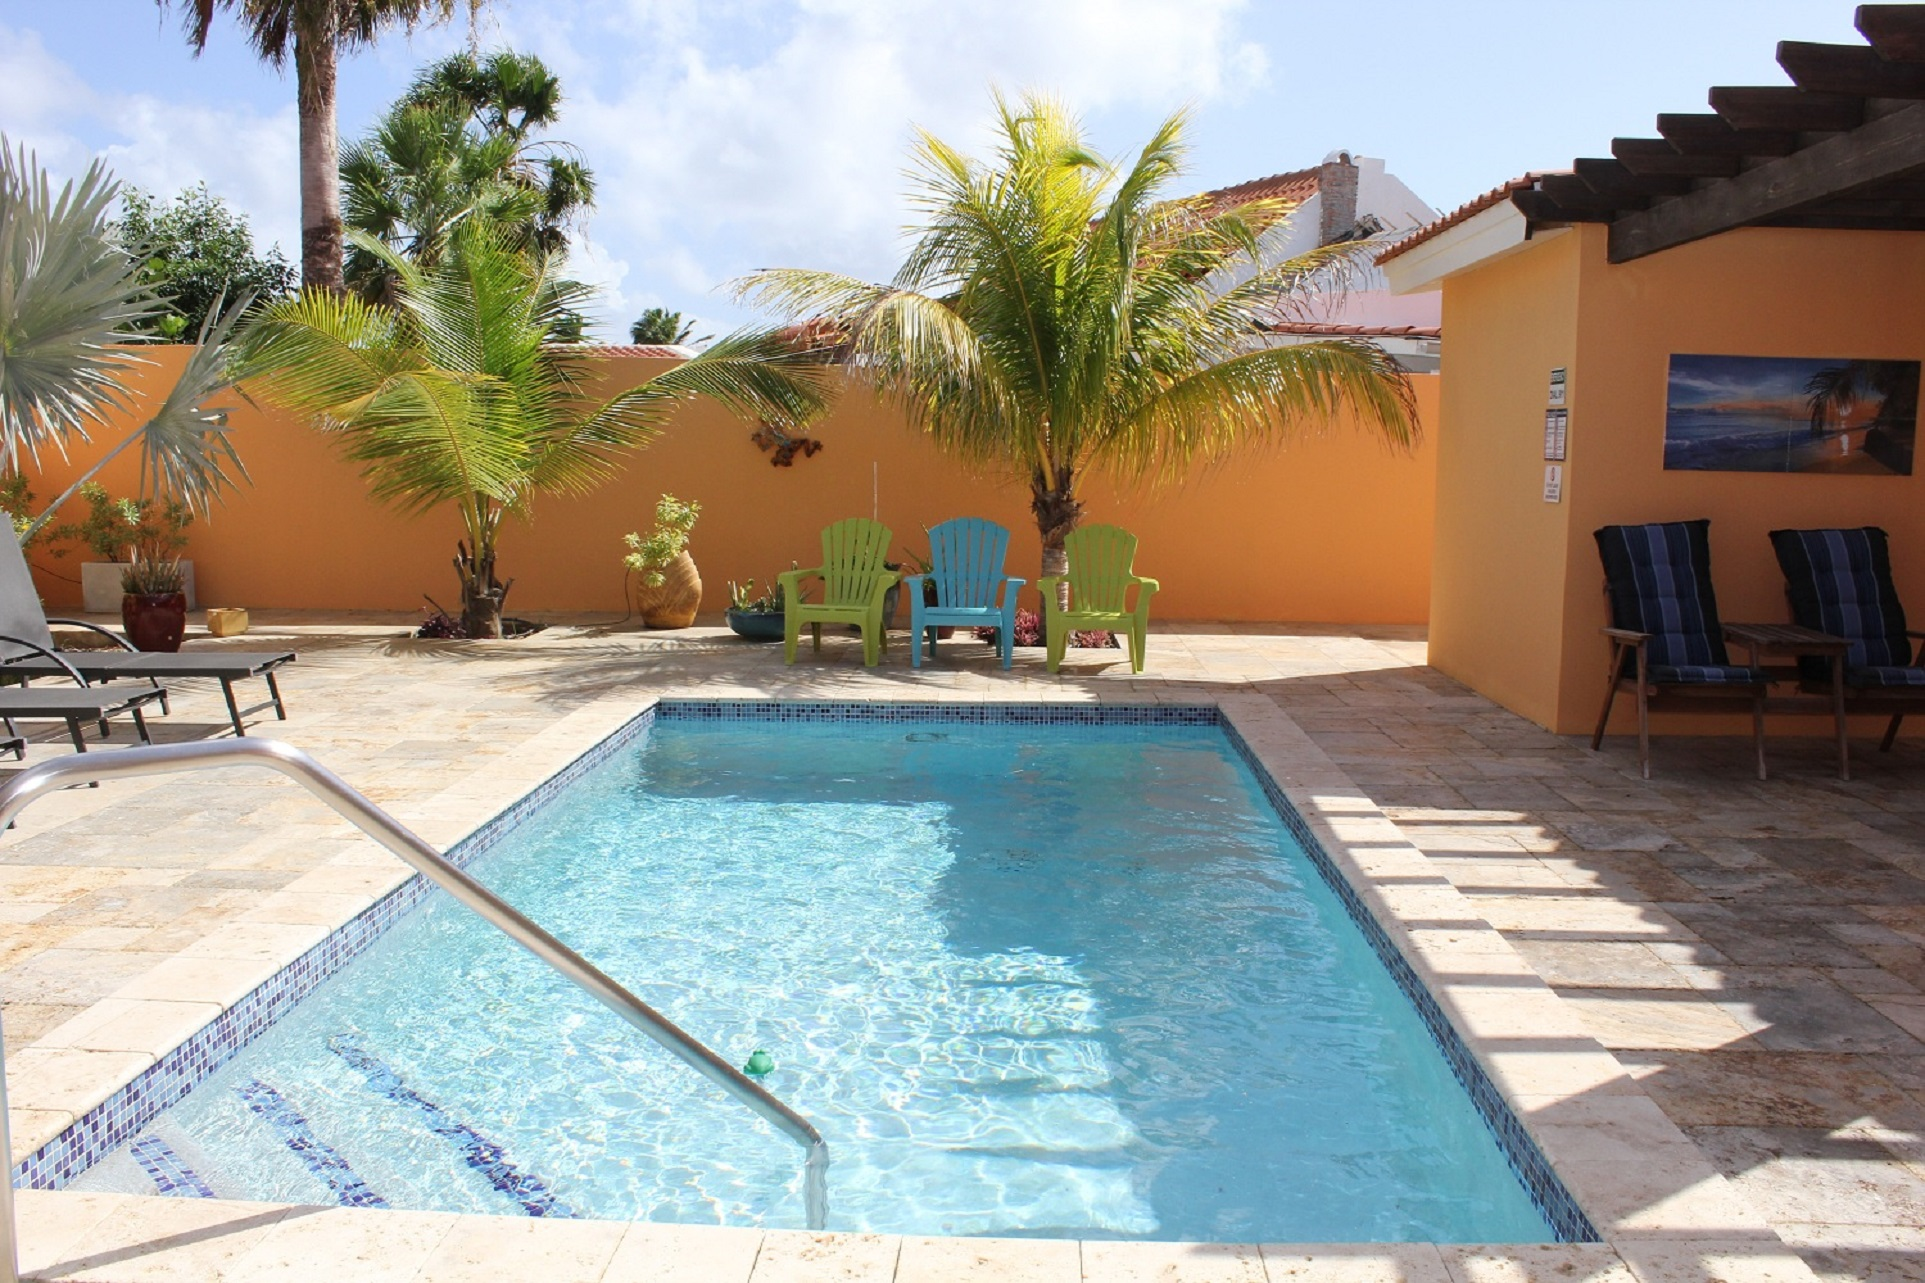 Aruba Day Dreams, only minutes drive away from the best beaches photo 23183103